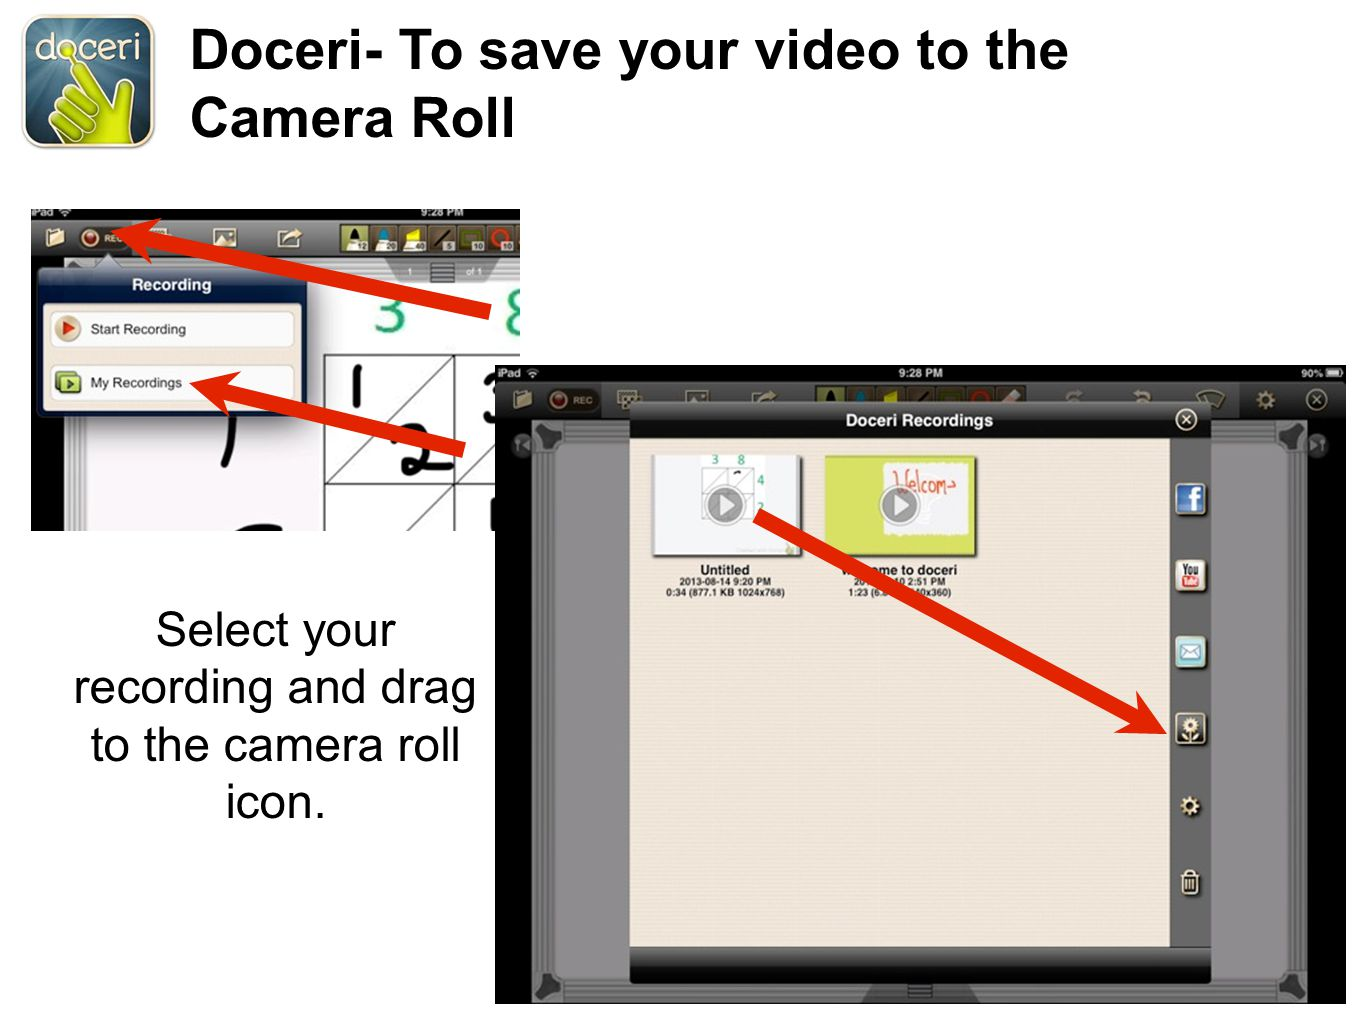 Doceri- To save your video to the Camera Roll Select your recording and drag to the camera roll icon.